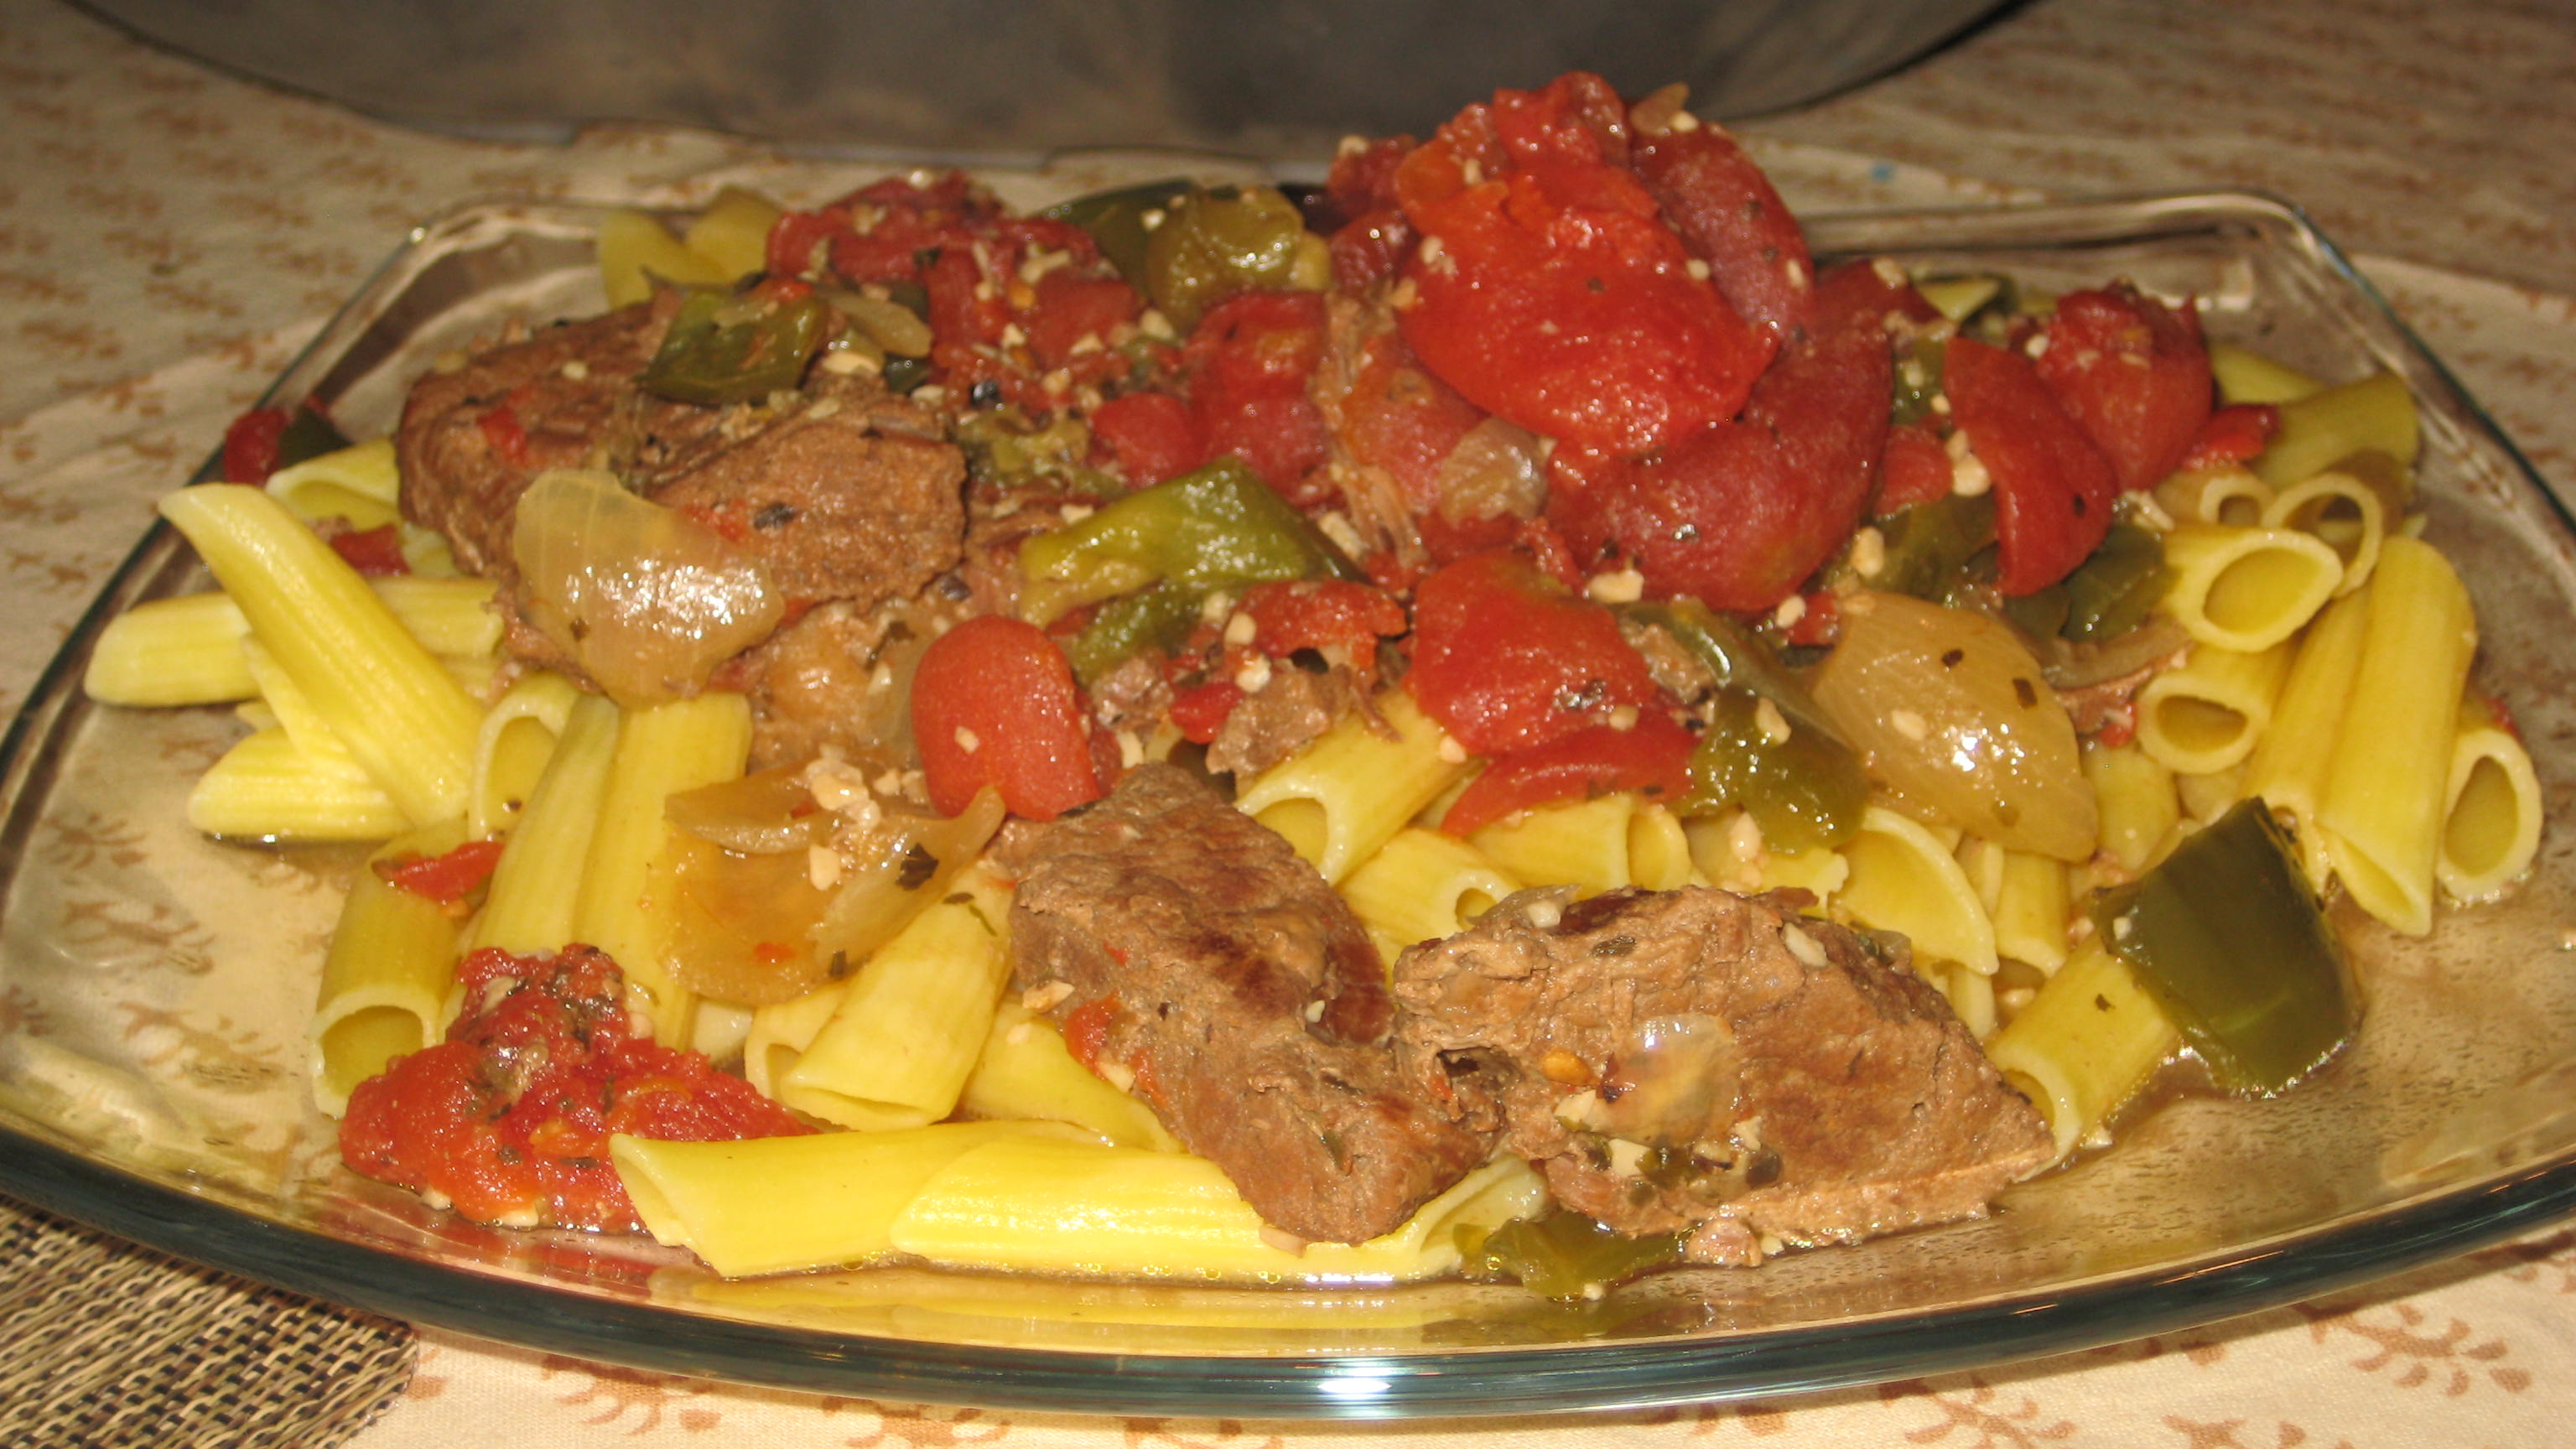 Crock-Pot Beef Round Steak In Green Pepper Tomato Sauce Over Pasta